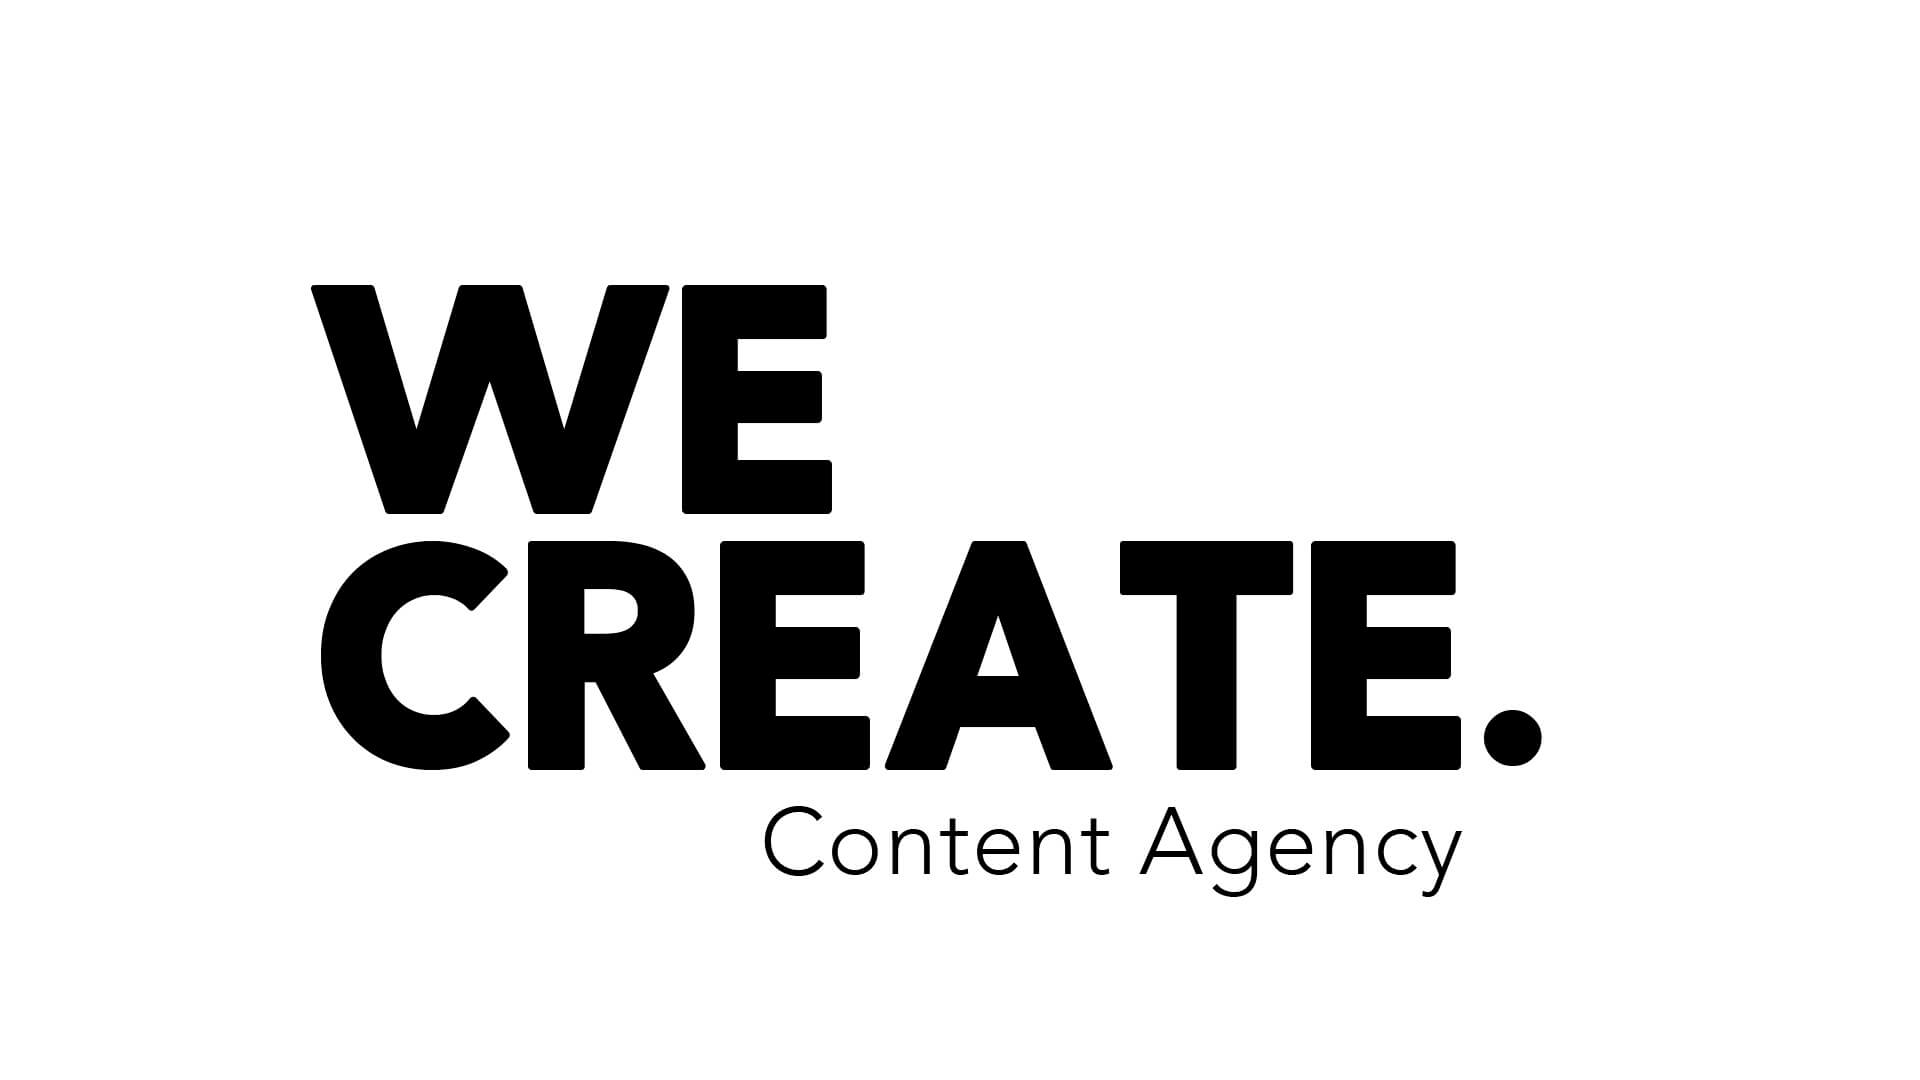 We create content agency